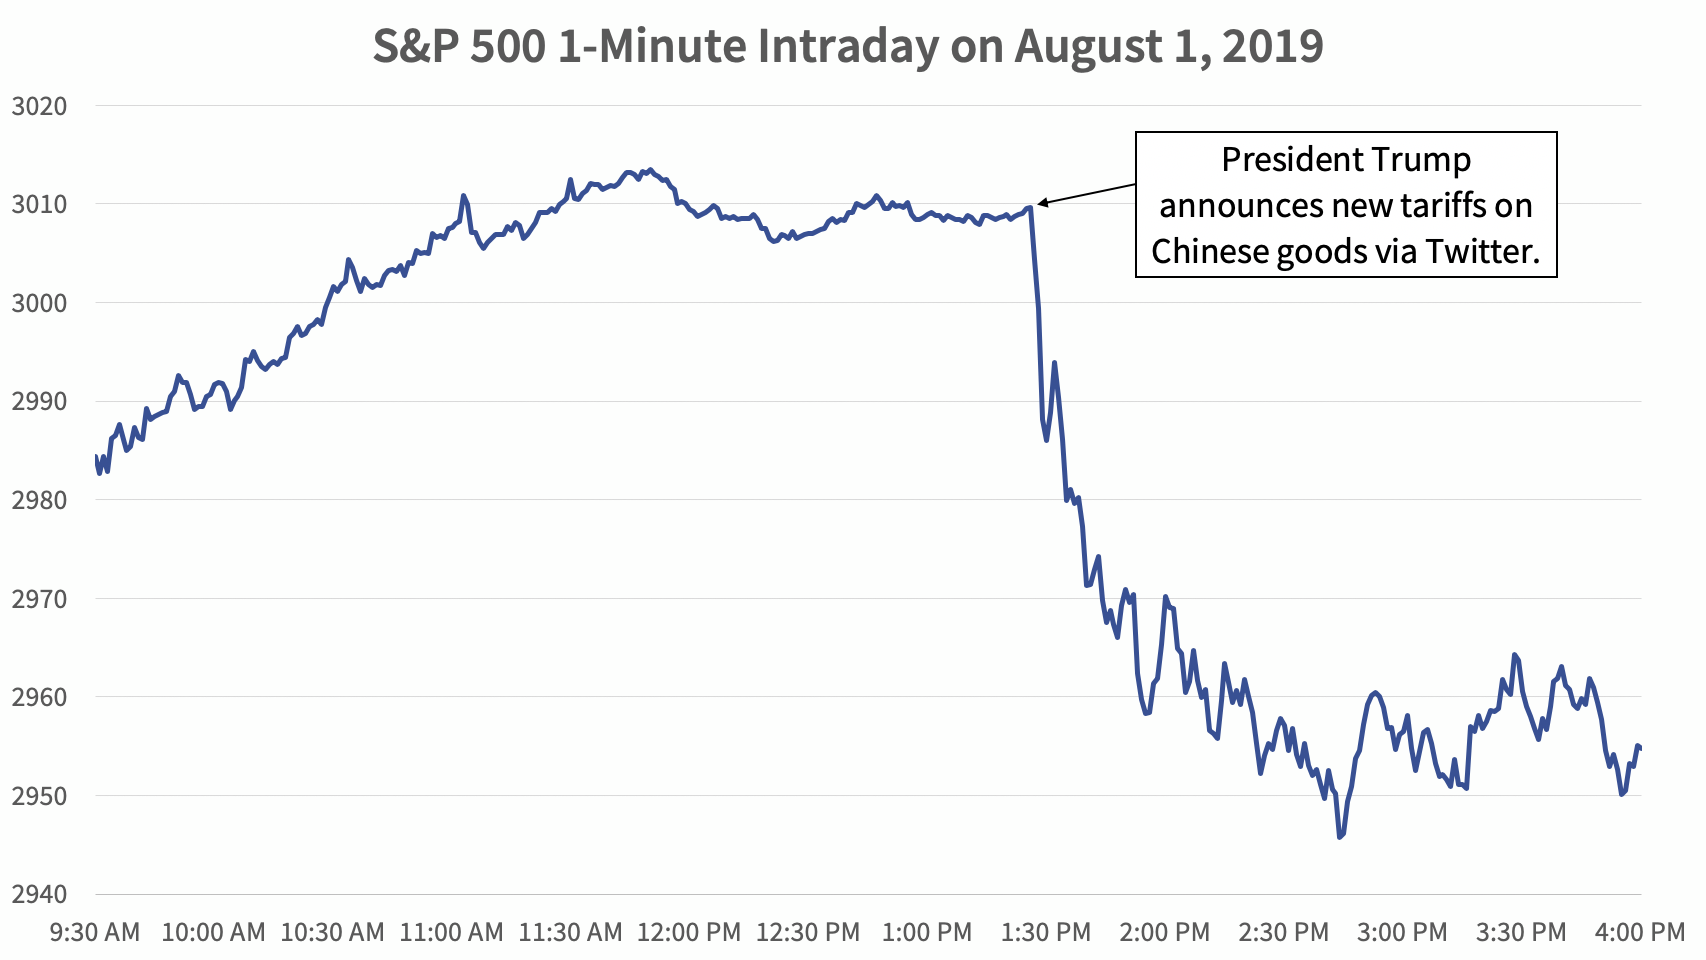 S&P 500 1-Minute Intraday on August 1, 2019